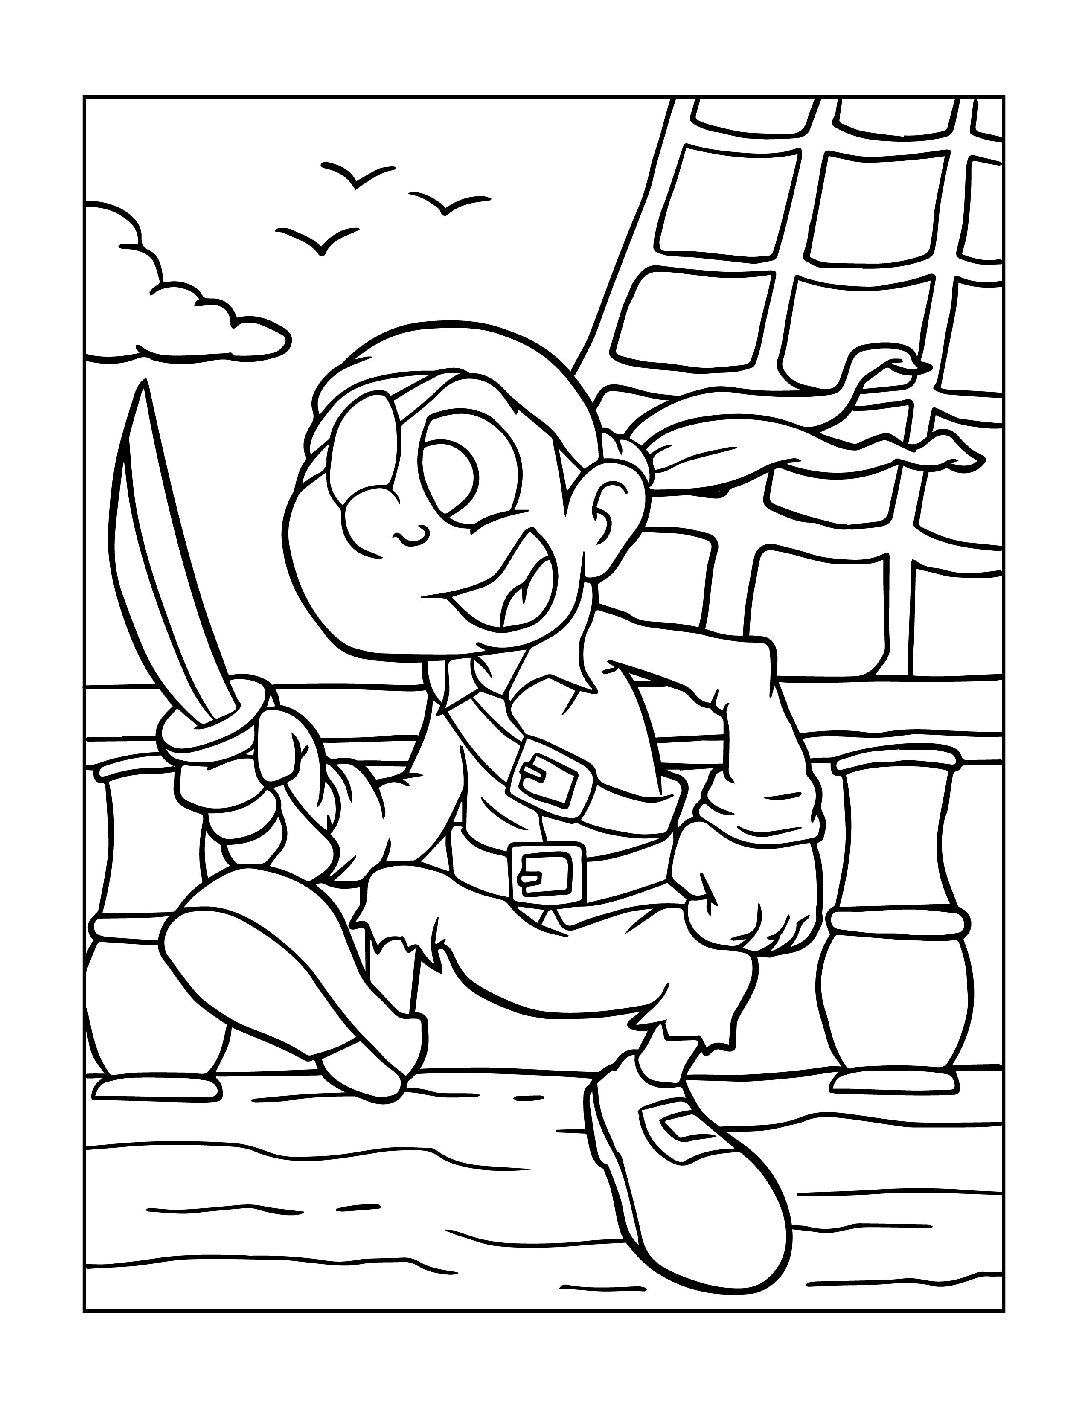 Coloring-Pages-Pirates-and-Knights-for-Boys-15-01-pdf Free Printable Pirates &  Knights Colouring Pages